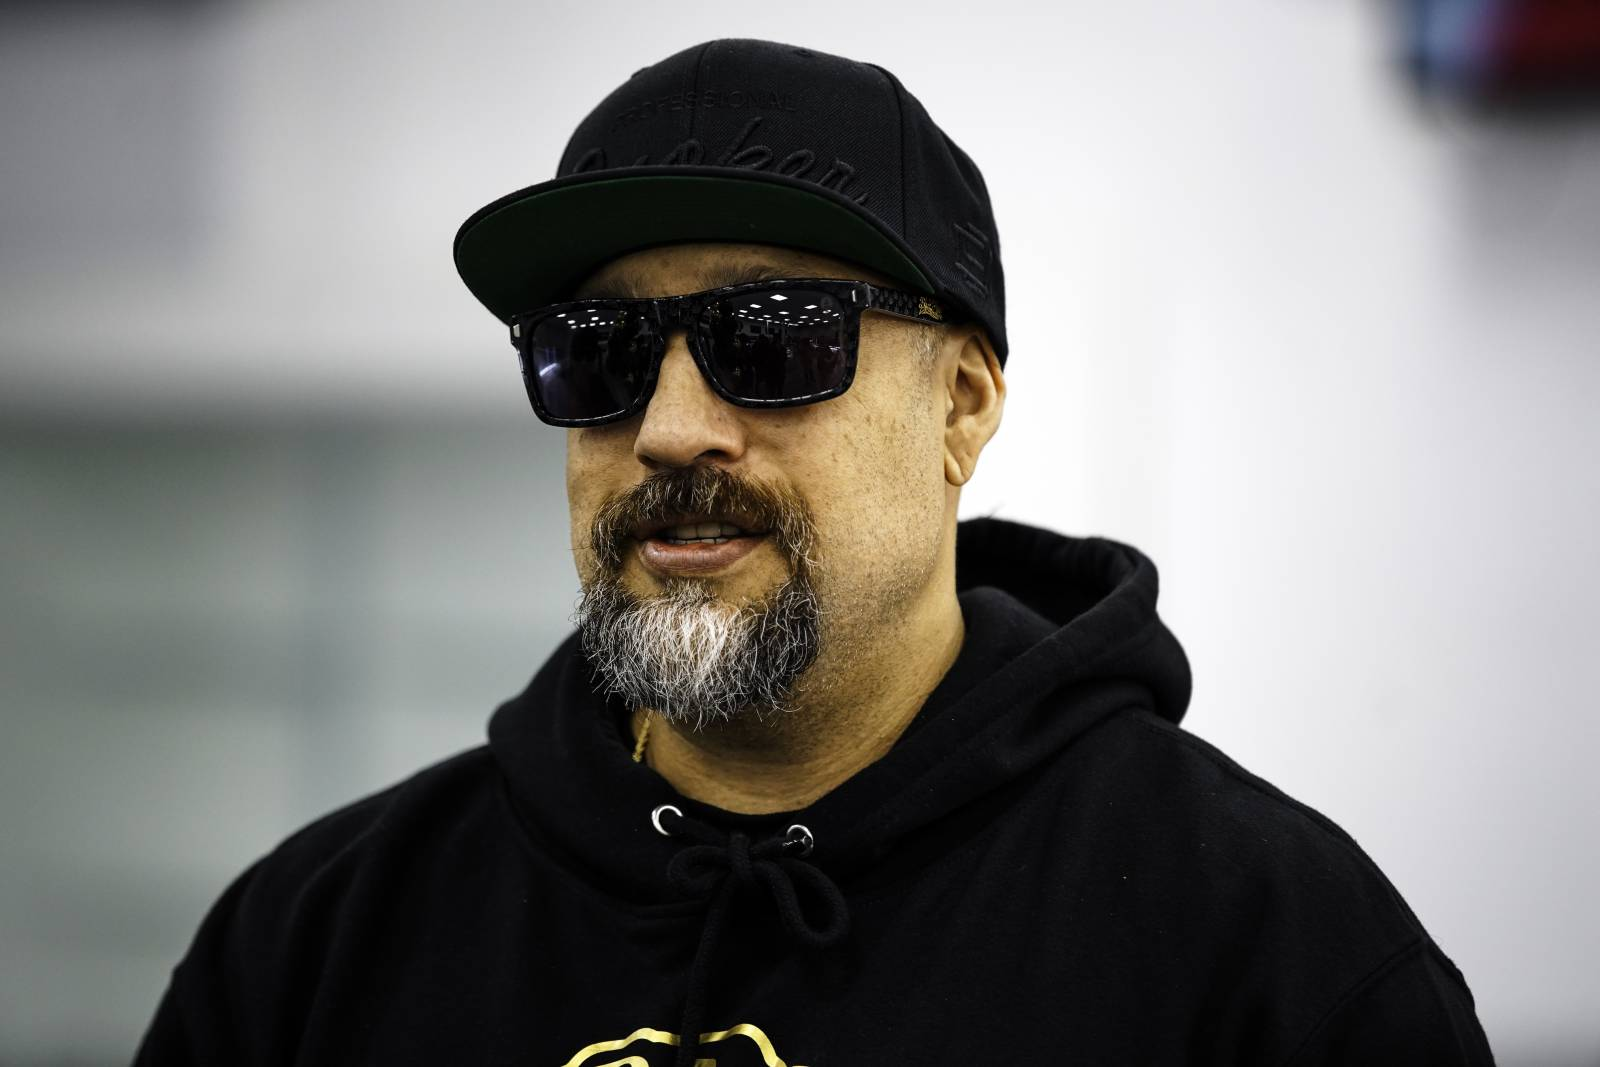 #DXCLUSIVE: B-Real Just Opened His 5th Dr. Greenthumb's Marijuana Dispensary